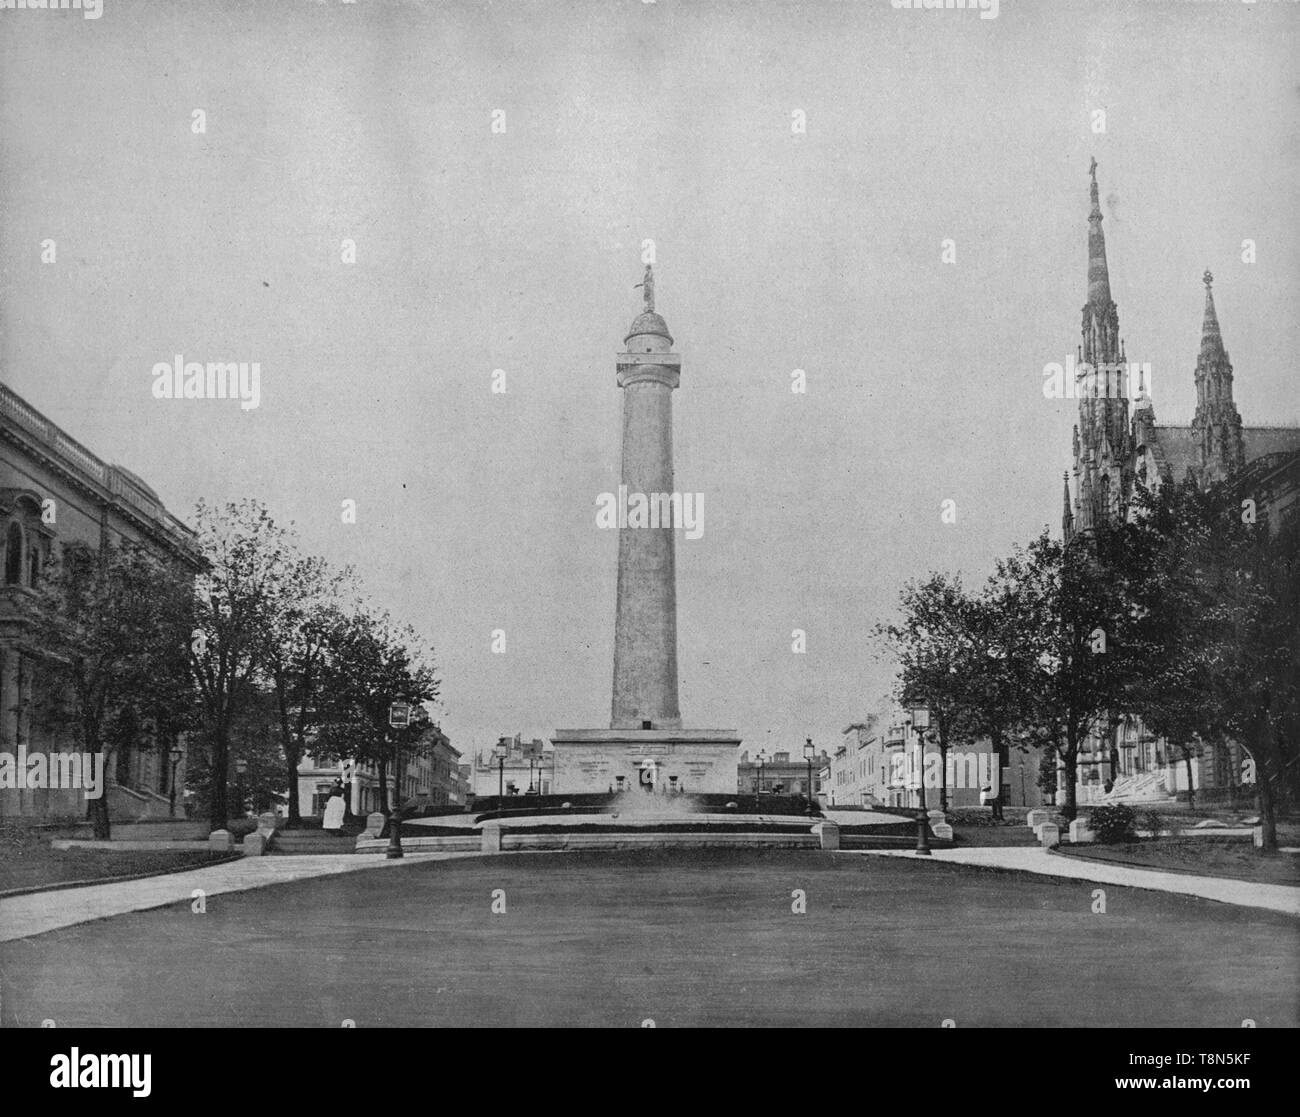 "'Washington Monument, Baltimore', c1897. Doric column in white marble. The first major monument honoring George Washington (1732-1799), designed by American architect Robert Mills (1781-1855).  From ""A Tour Through the New World America"", by Prof. Geo. R. Cromwell. [C. N. Greig & Co., London, c1897] - Stock Image"